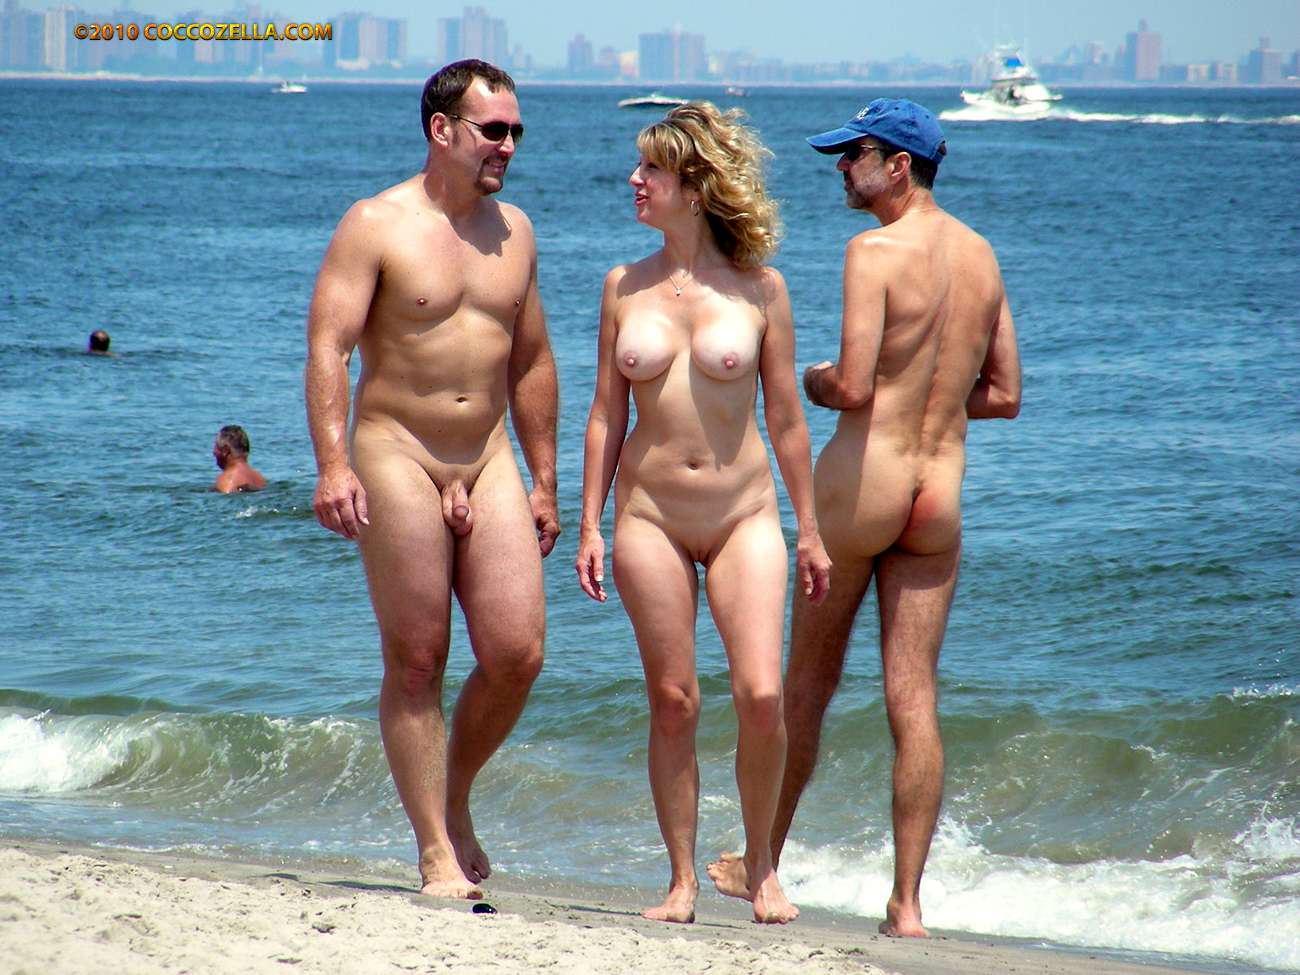 Nude beach adult only